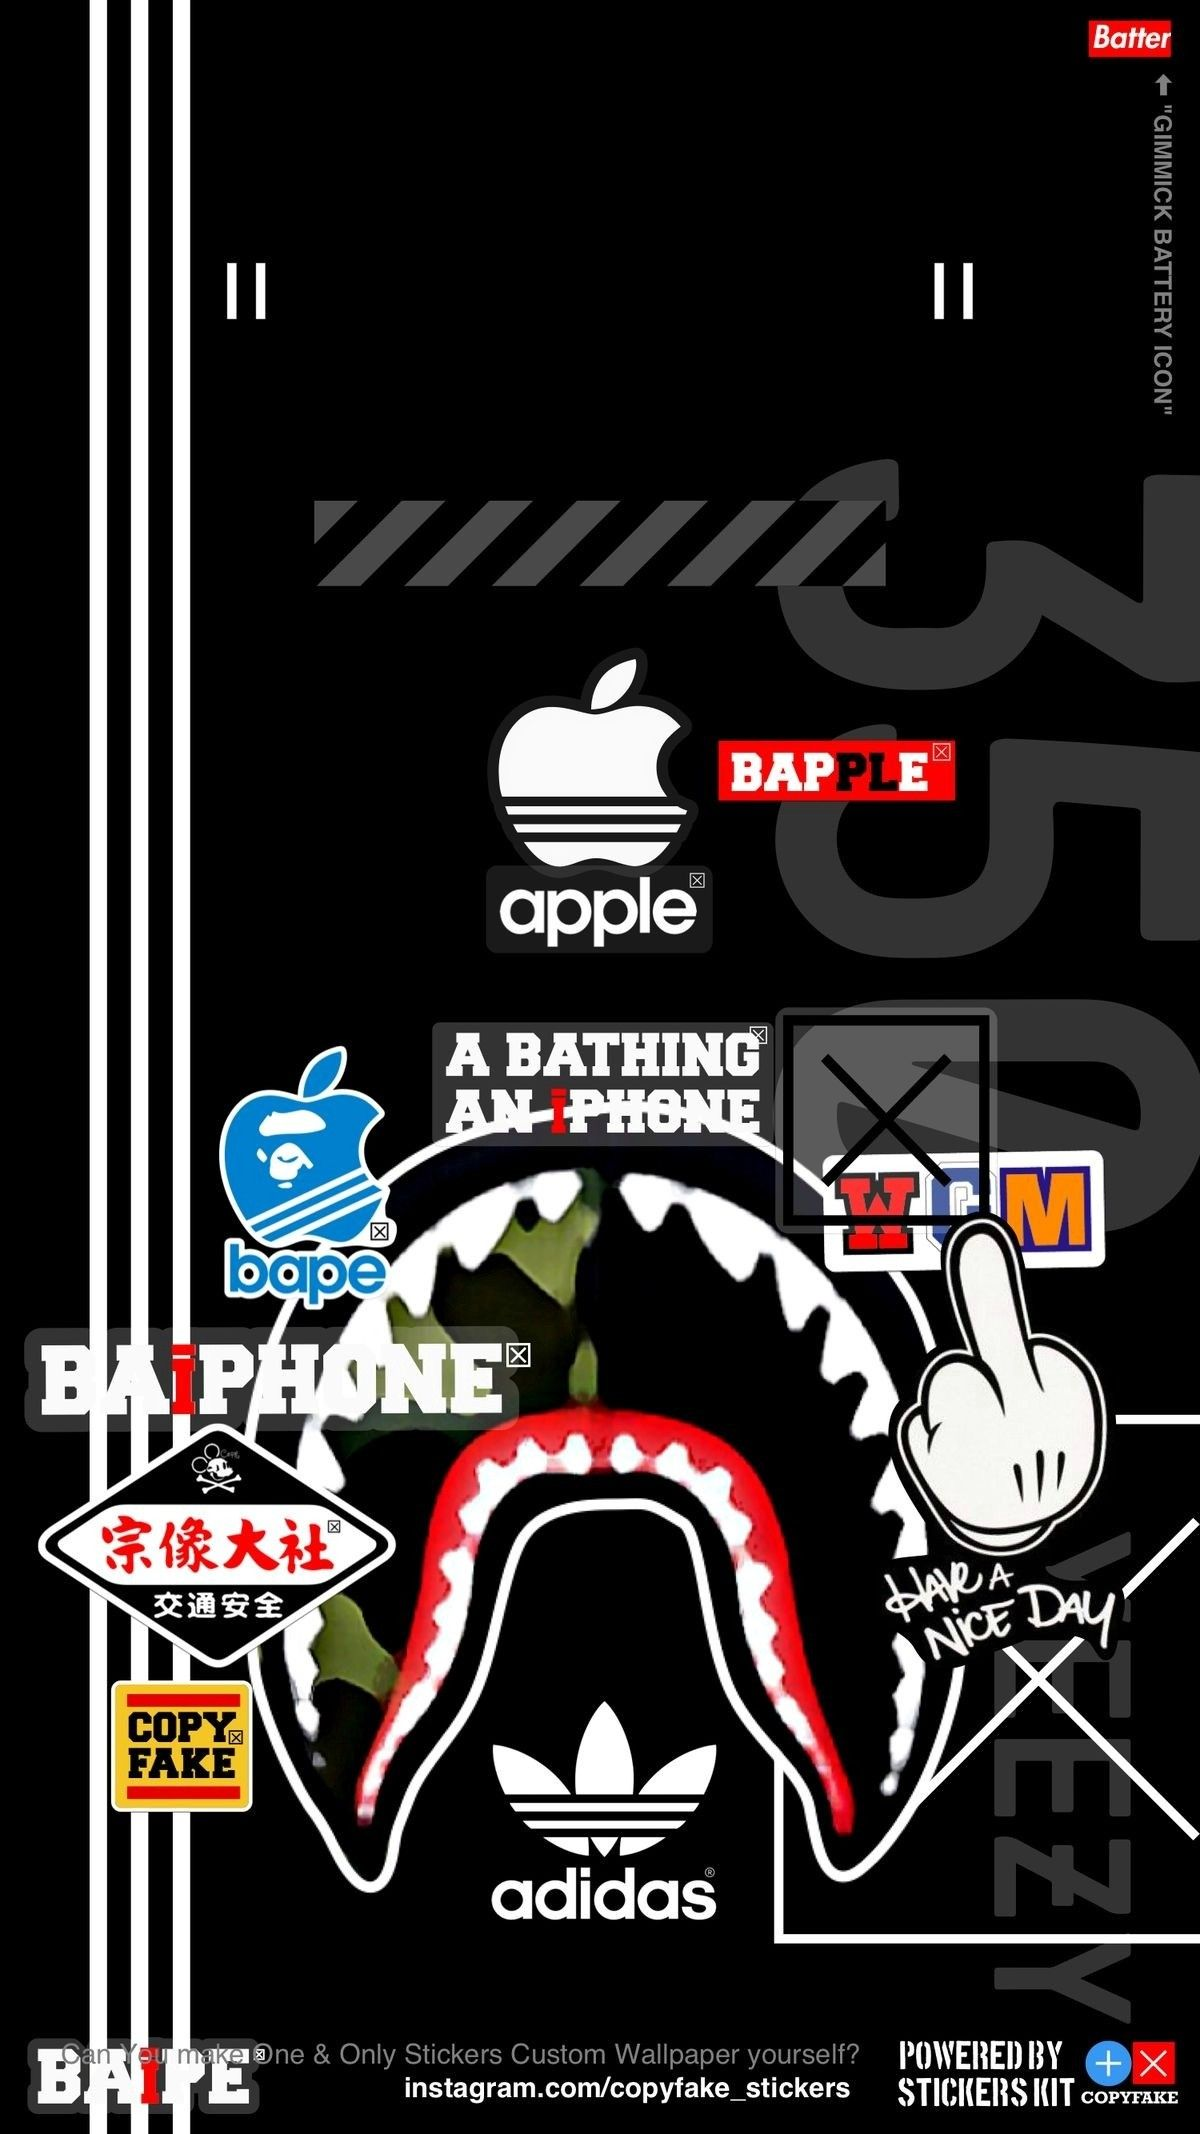 Hypebeast Wallpapers Nixxboi Bape Wallpapers Bape Wallpaper